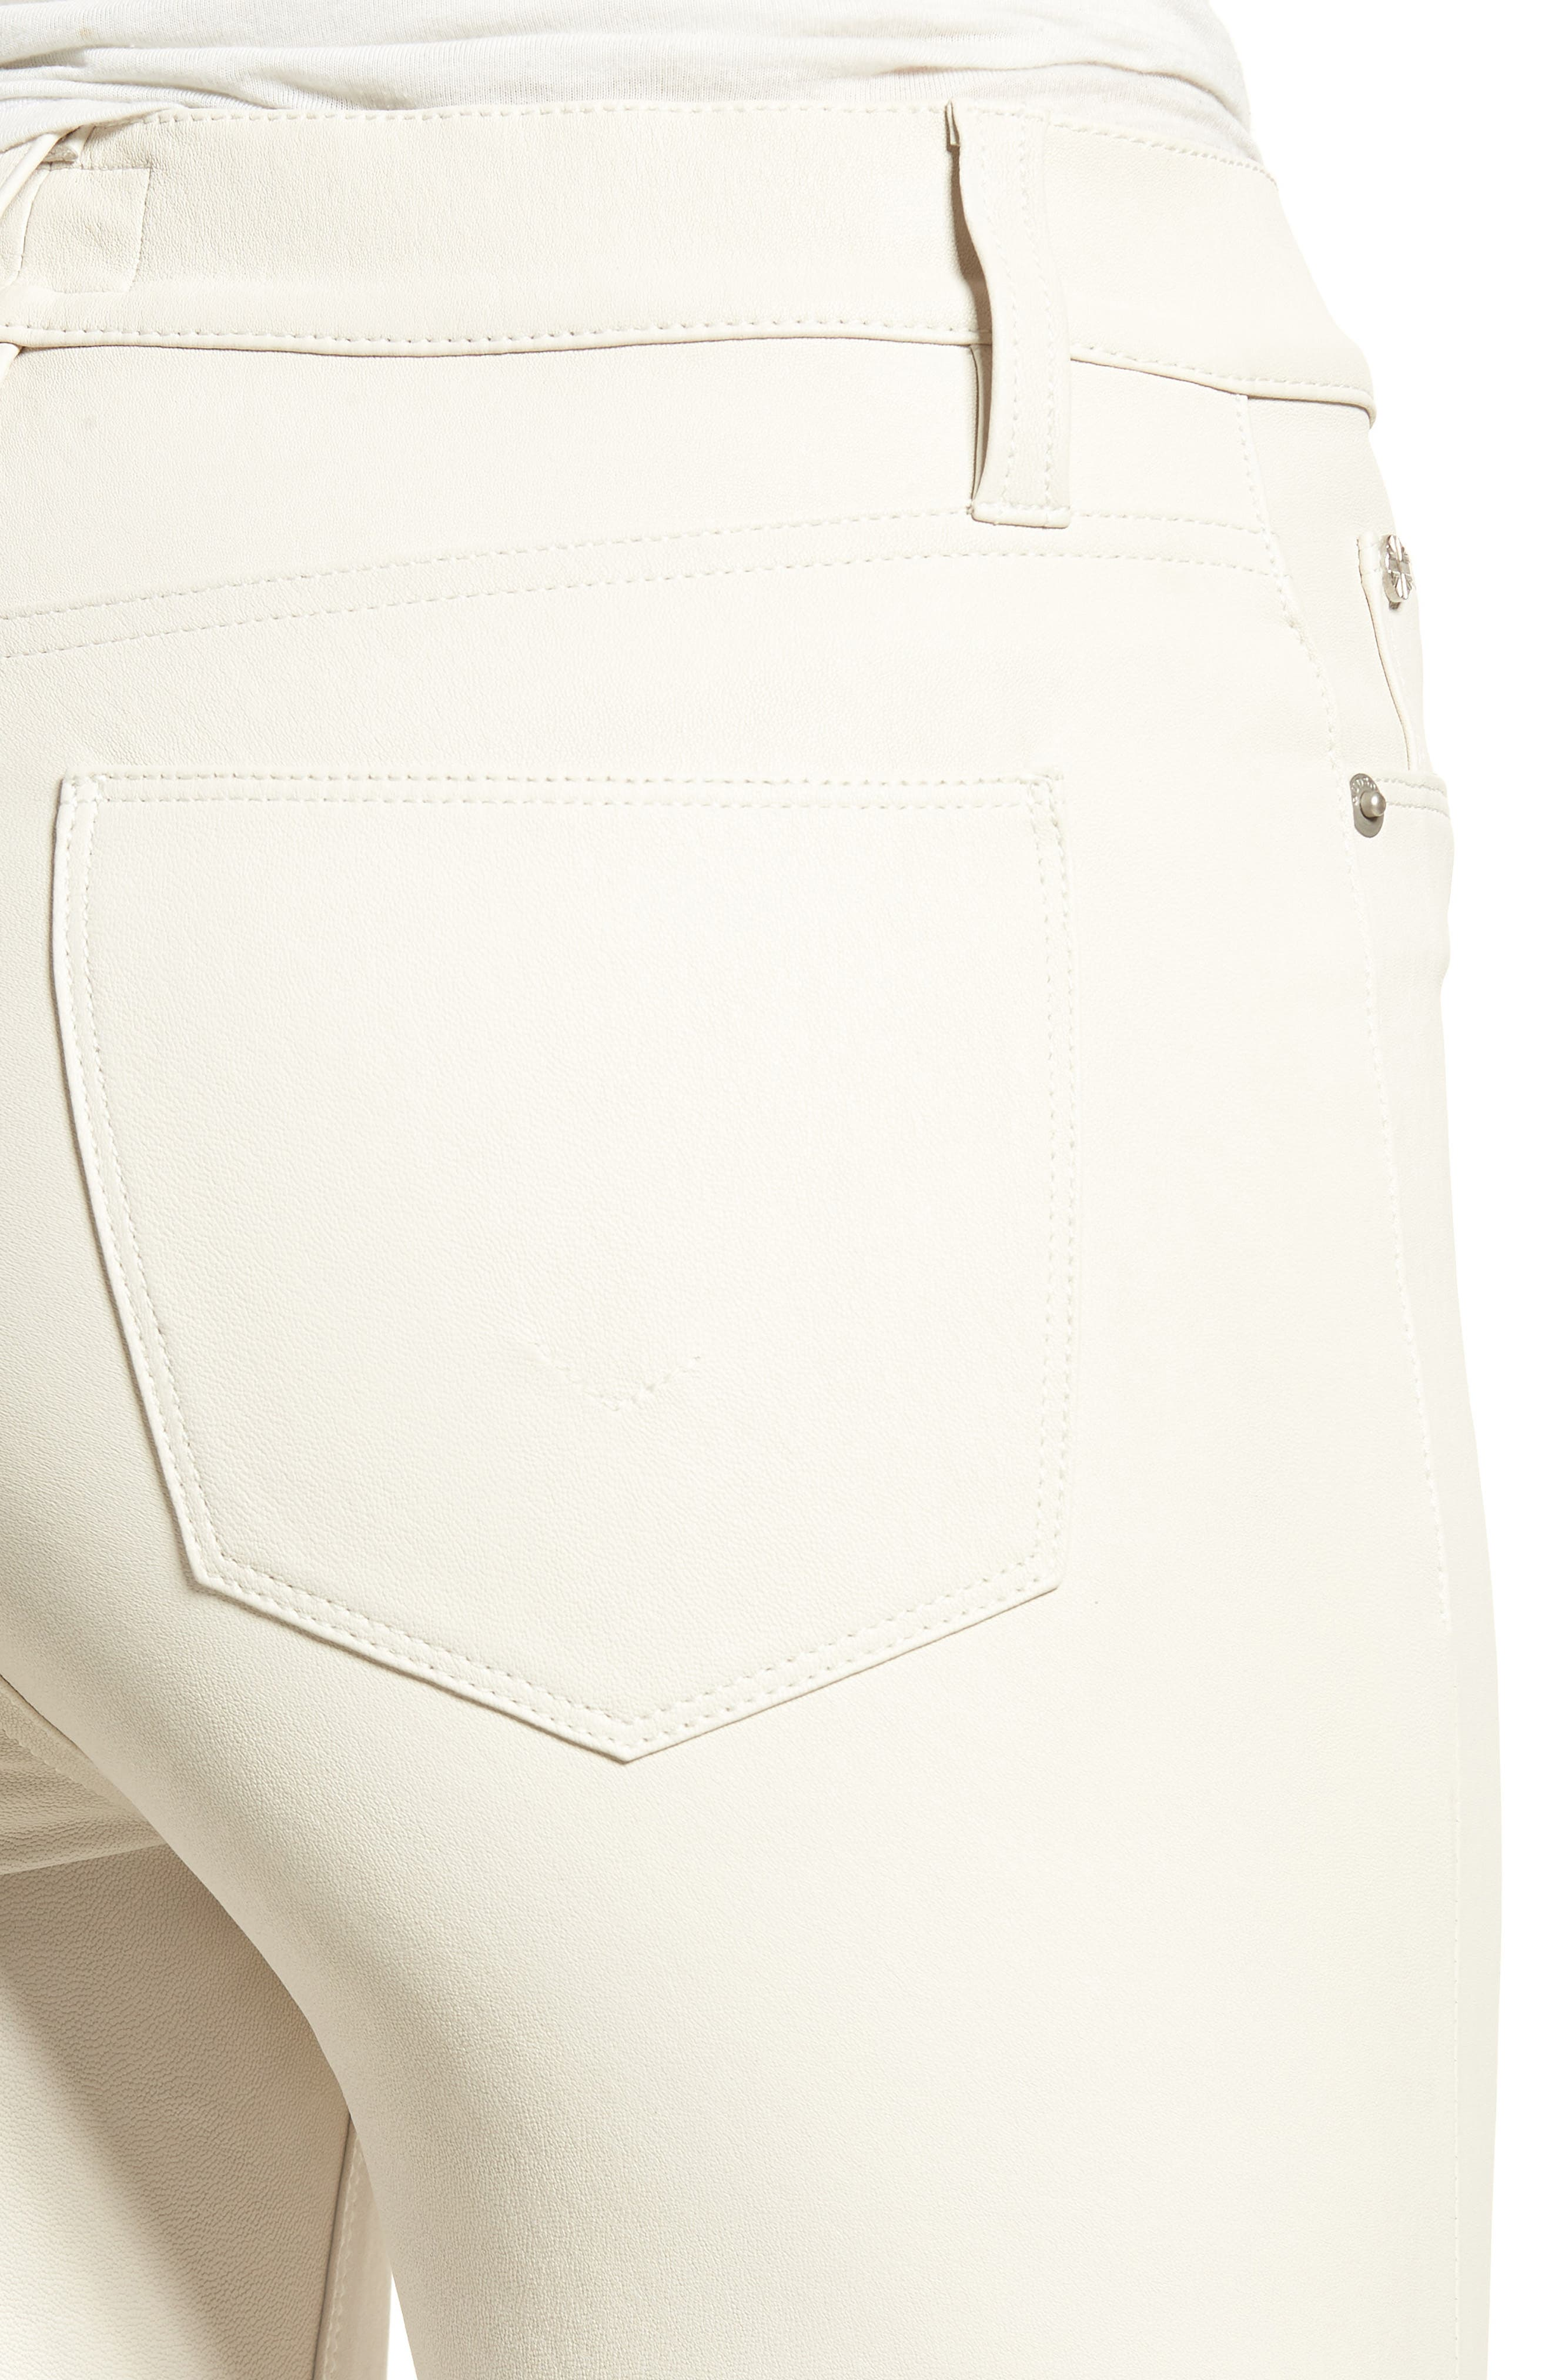 Barbara High Waist Super Skinny Leather Jeans,                             Alternate thumbnail 4, color,                             PALE WHITE